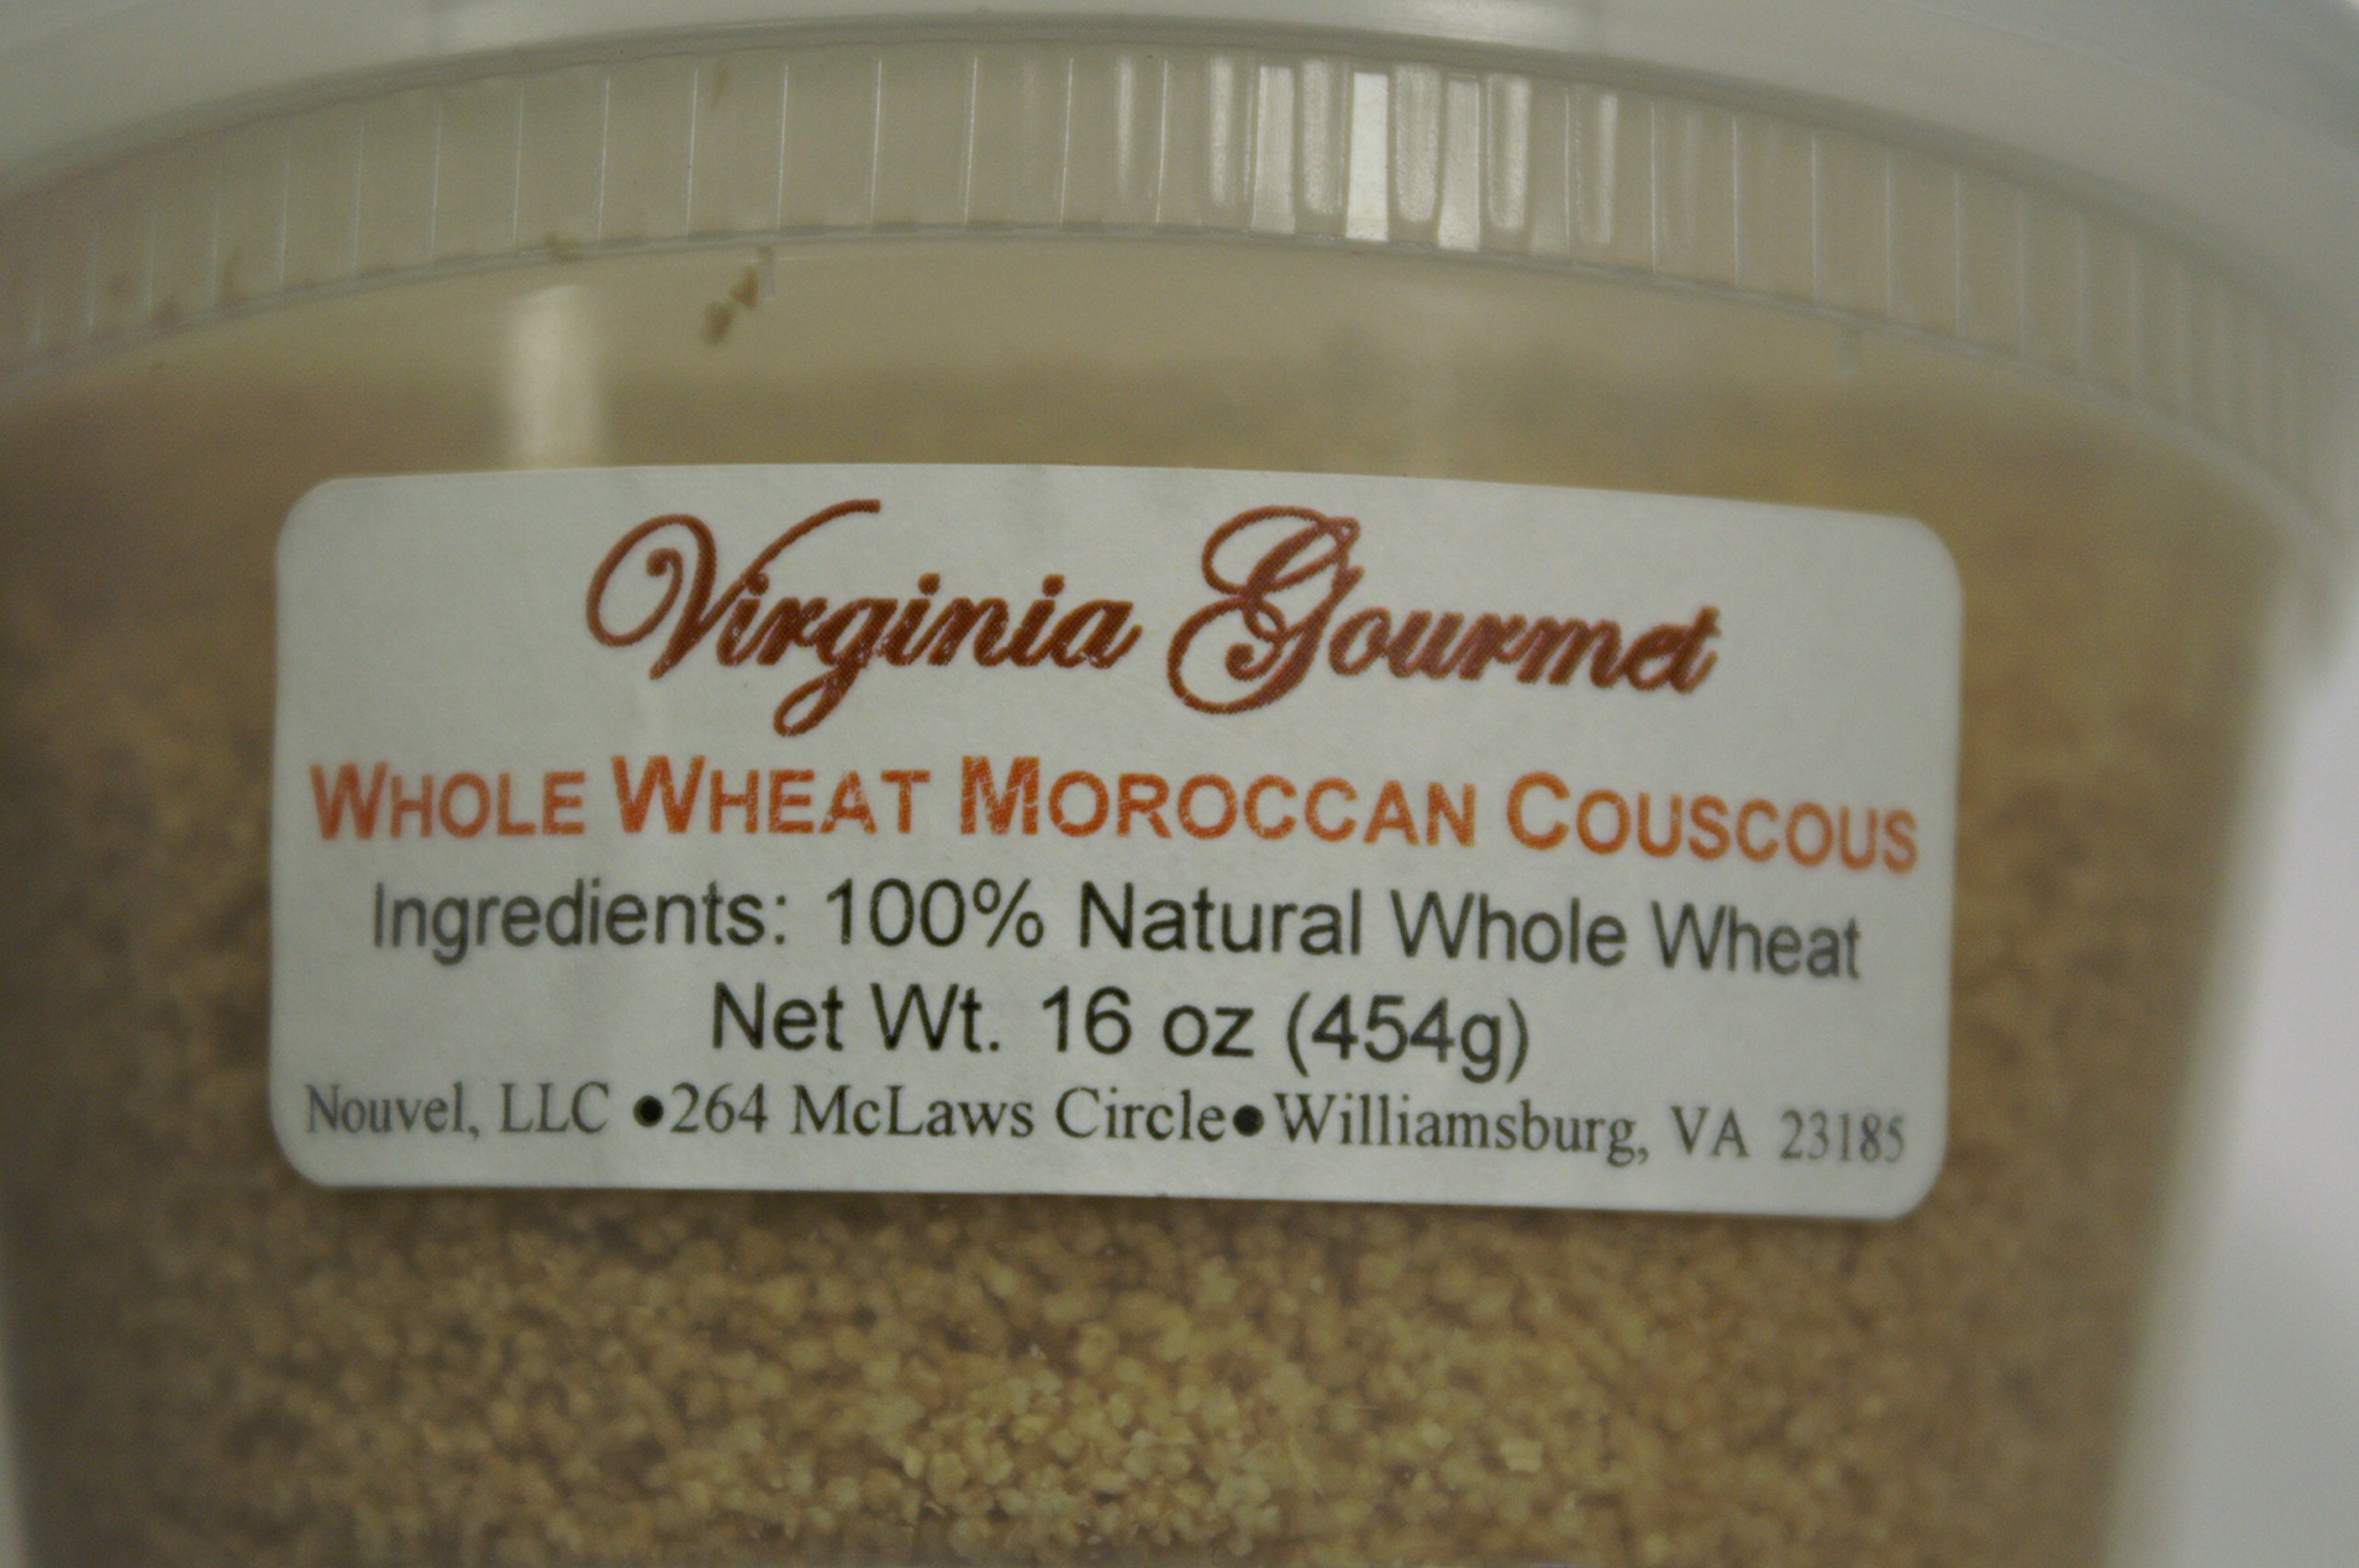 Virginia Gourmet Moroccan Couscous - 100% All Natural Semolina Durum Wheat- Authentic Moroccan Couscous-Cooks in 5 minutes (2Pack-10 oz each package)